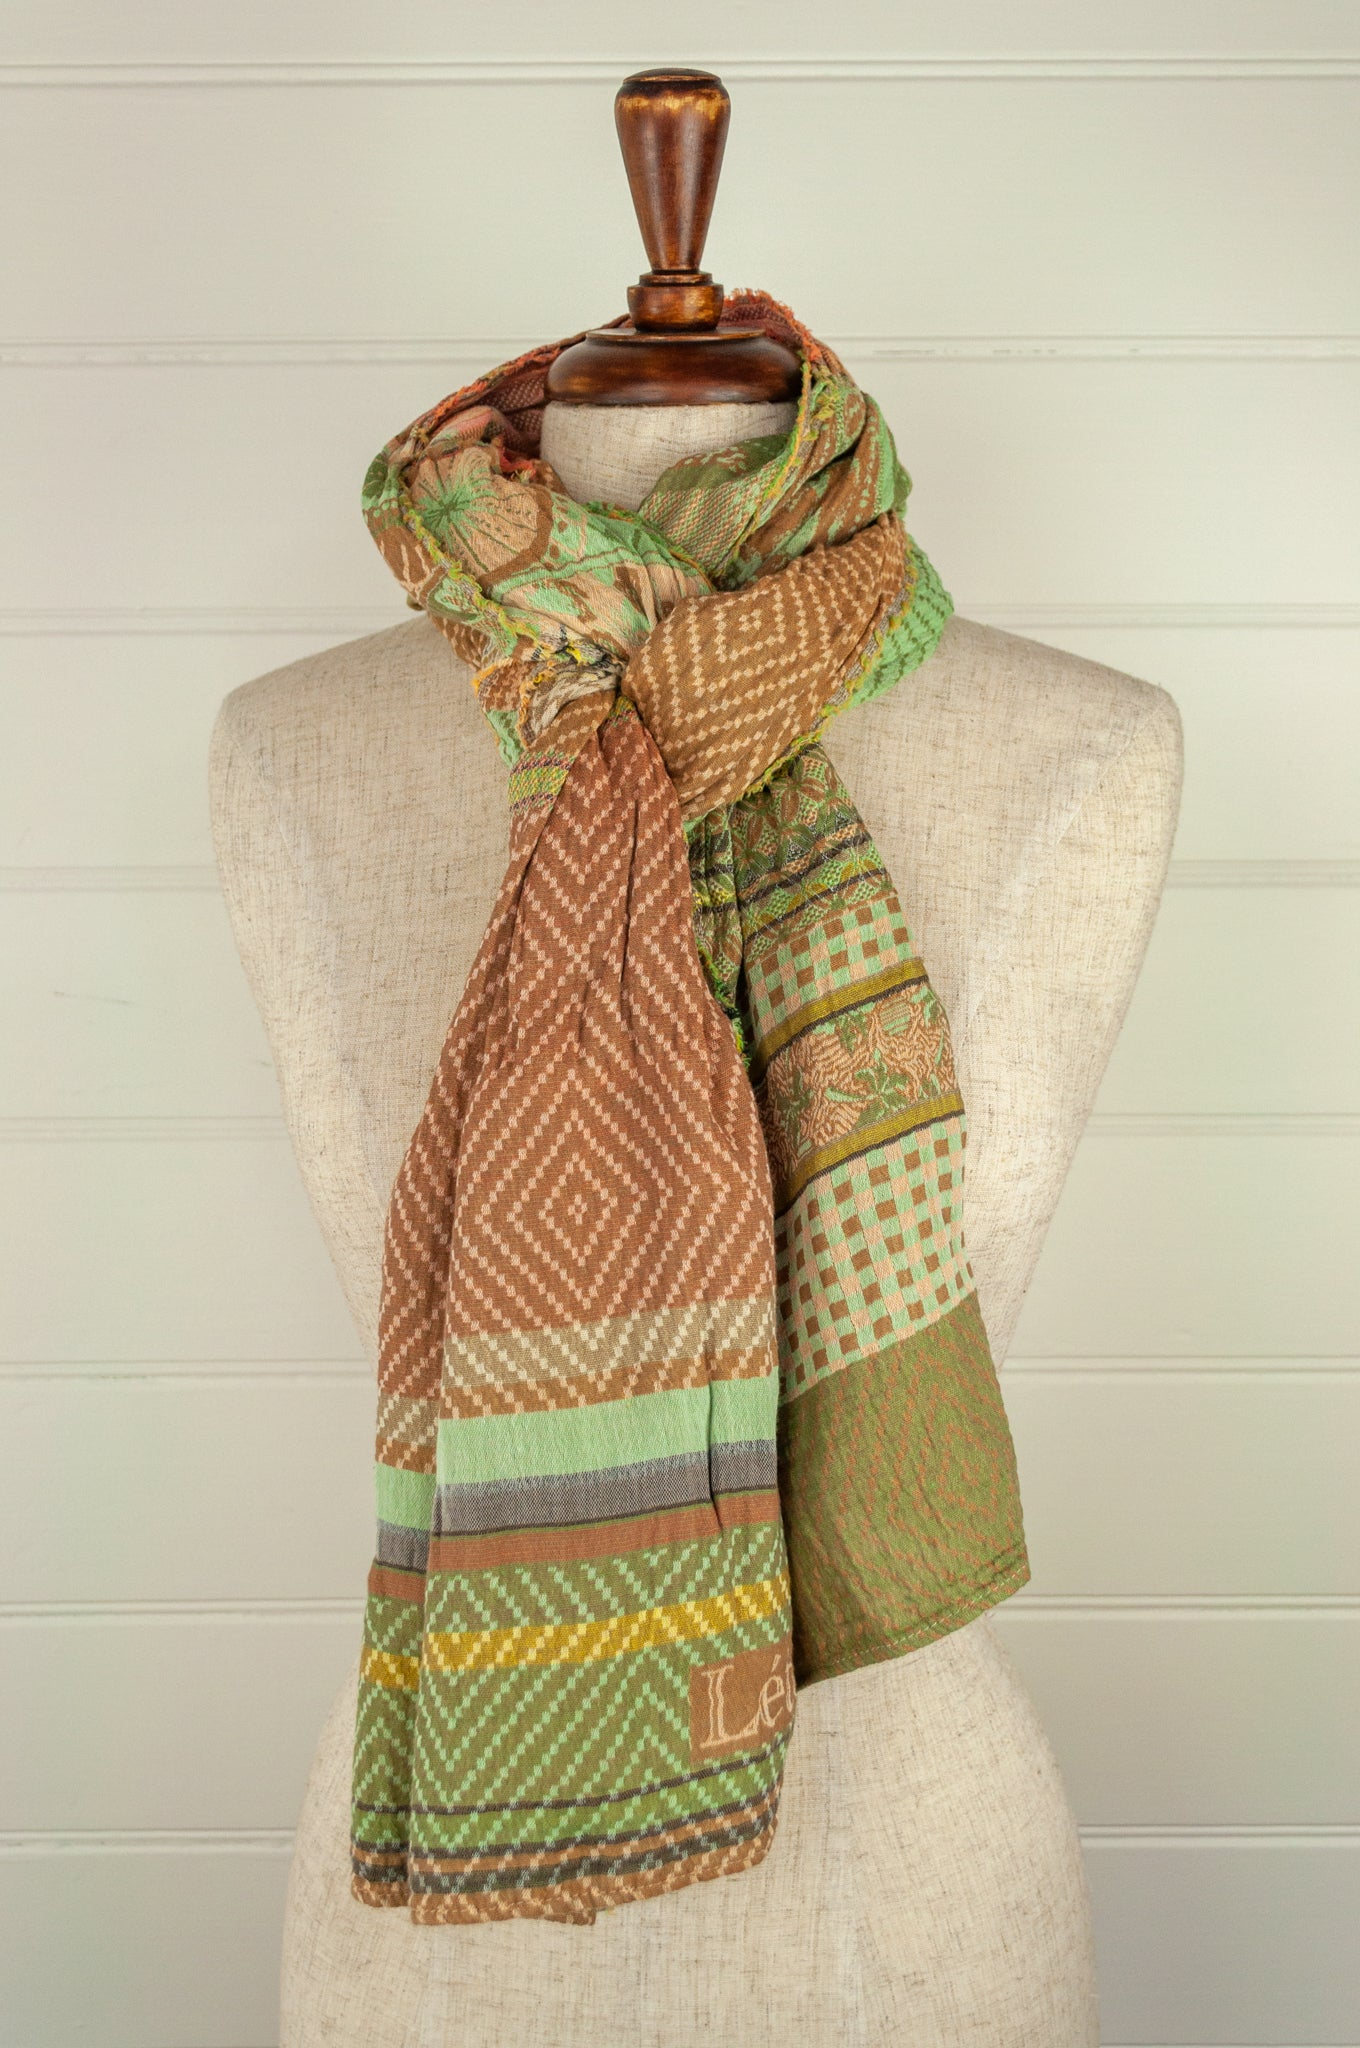 Létol French organic cotton scarf with a graphic stripe design in autumn tones of pistachio, lemon, coffee and rose pink.